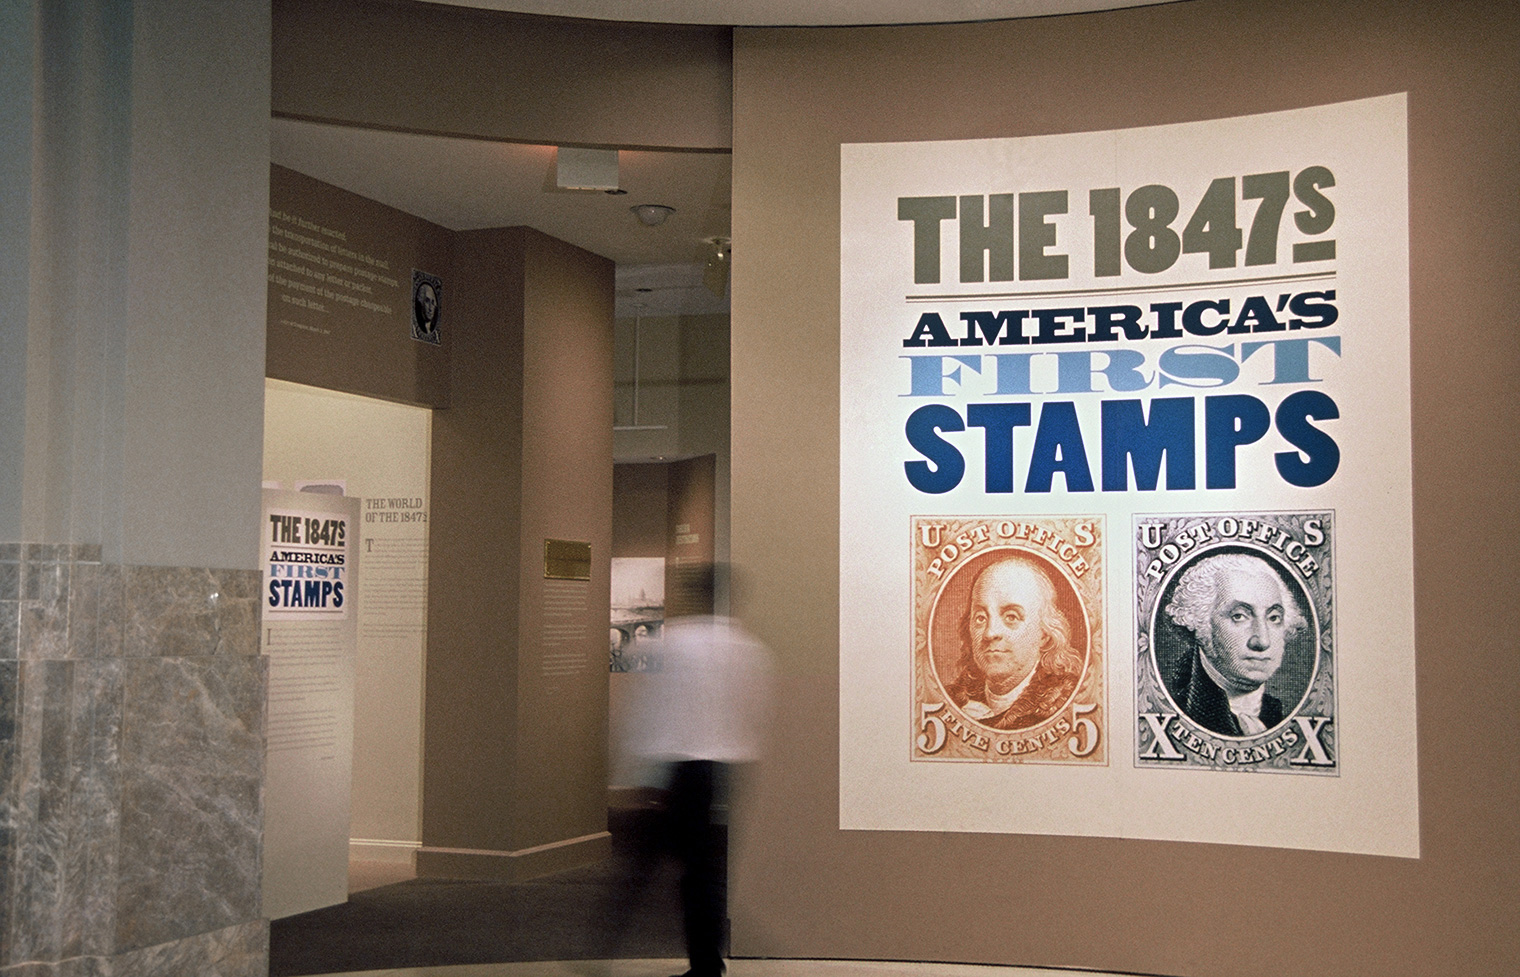 An exhibition presenting more than one hundred envelopes featuring the nation's first two postage stamps.